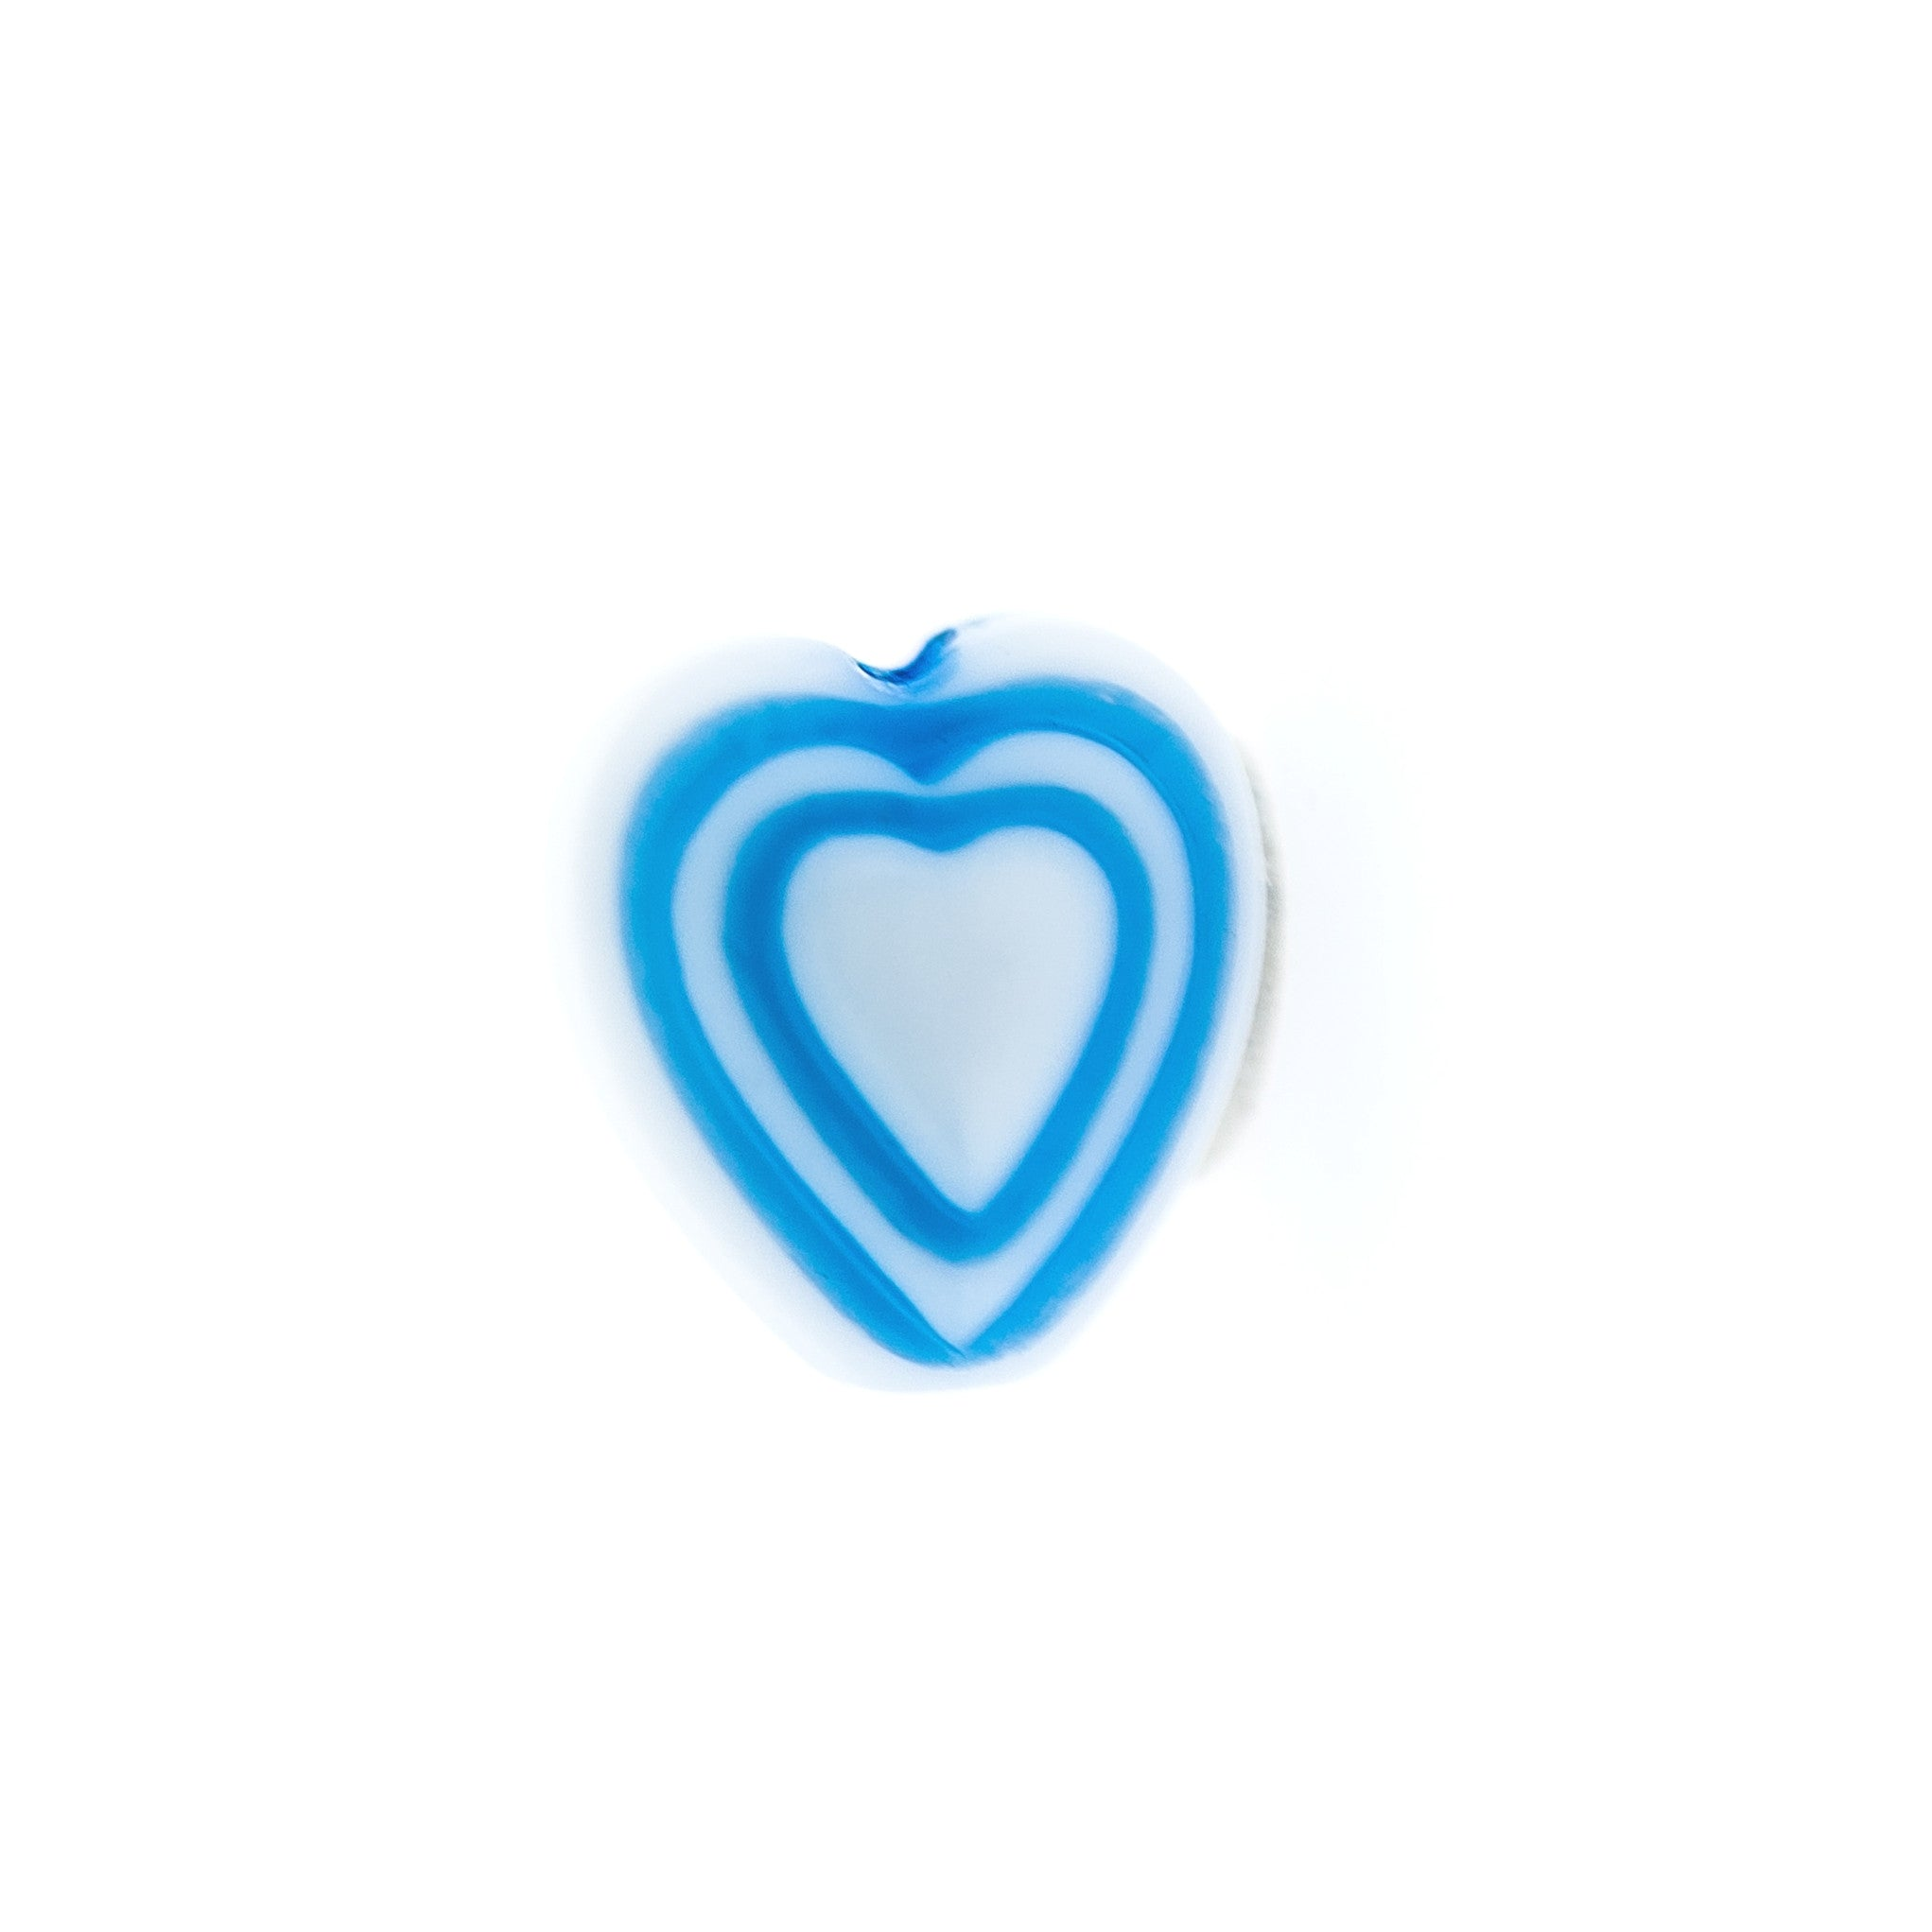 6MM Light Blue On White Heart Bead (144 pieces)